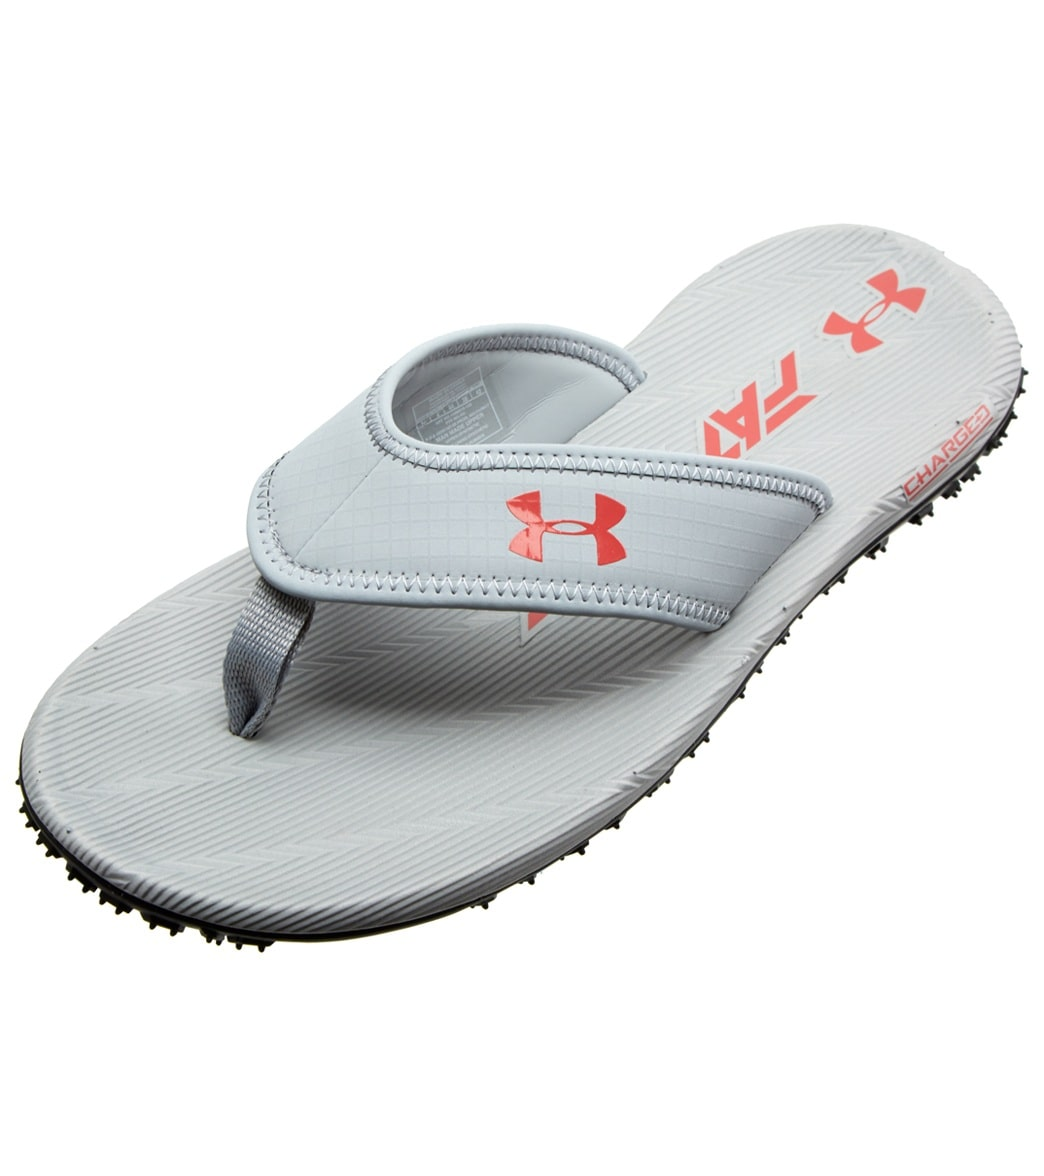 Under Armour Men\'s Fat Tire Flip Flop at SwimOutlet.com - Free Shipping